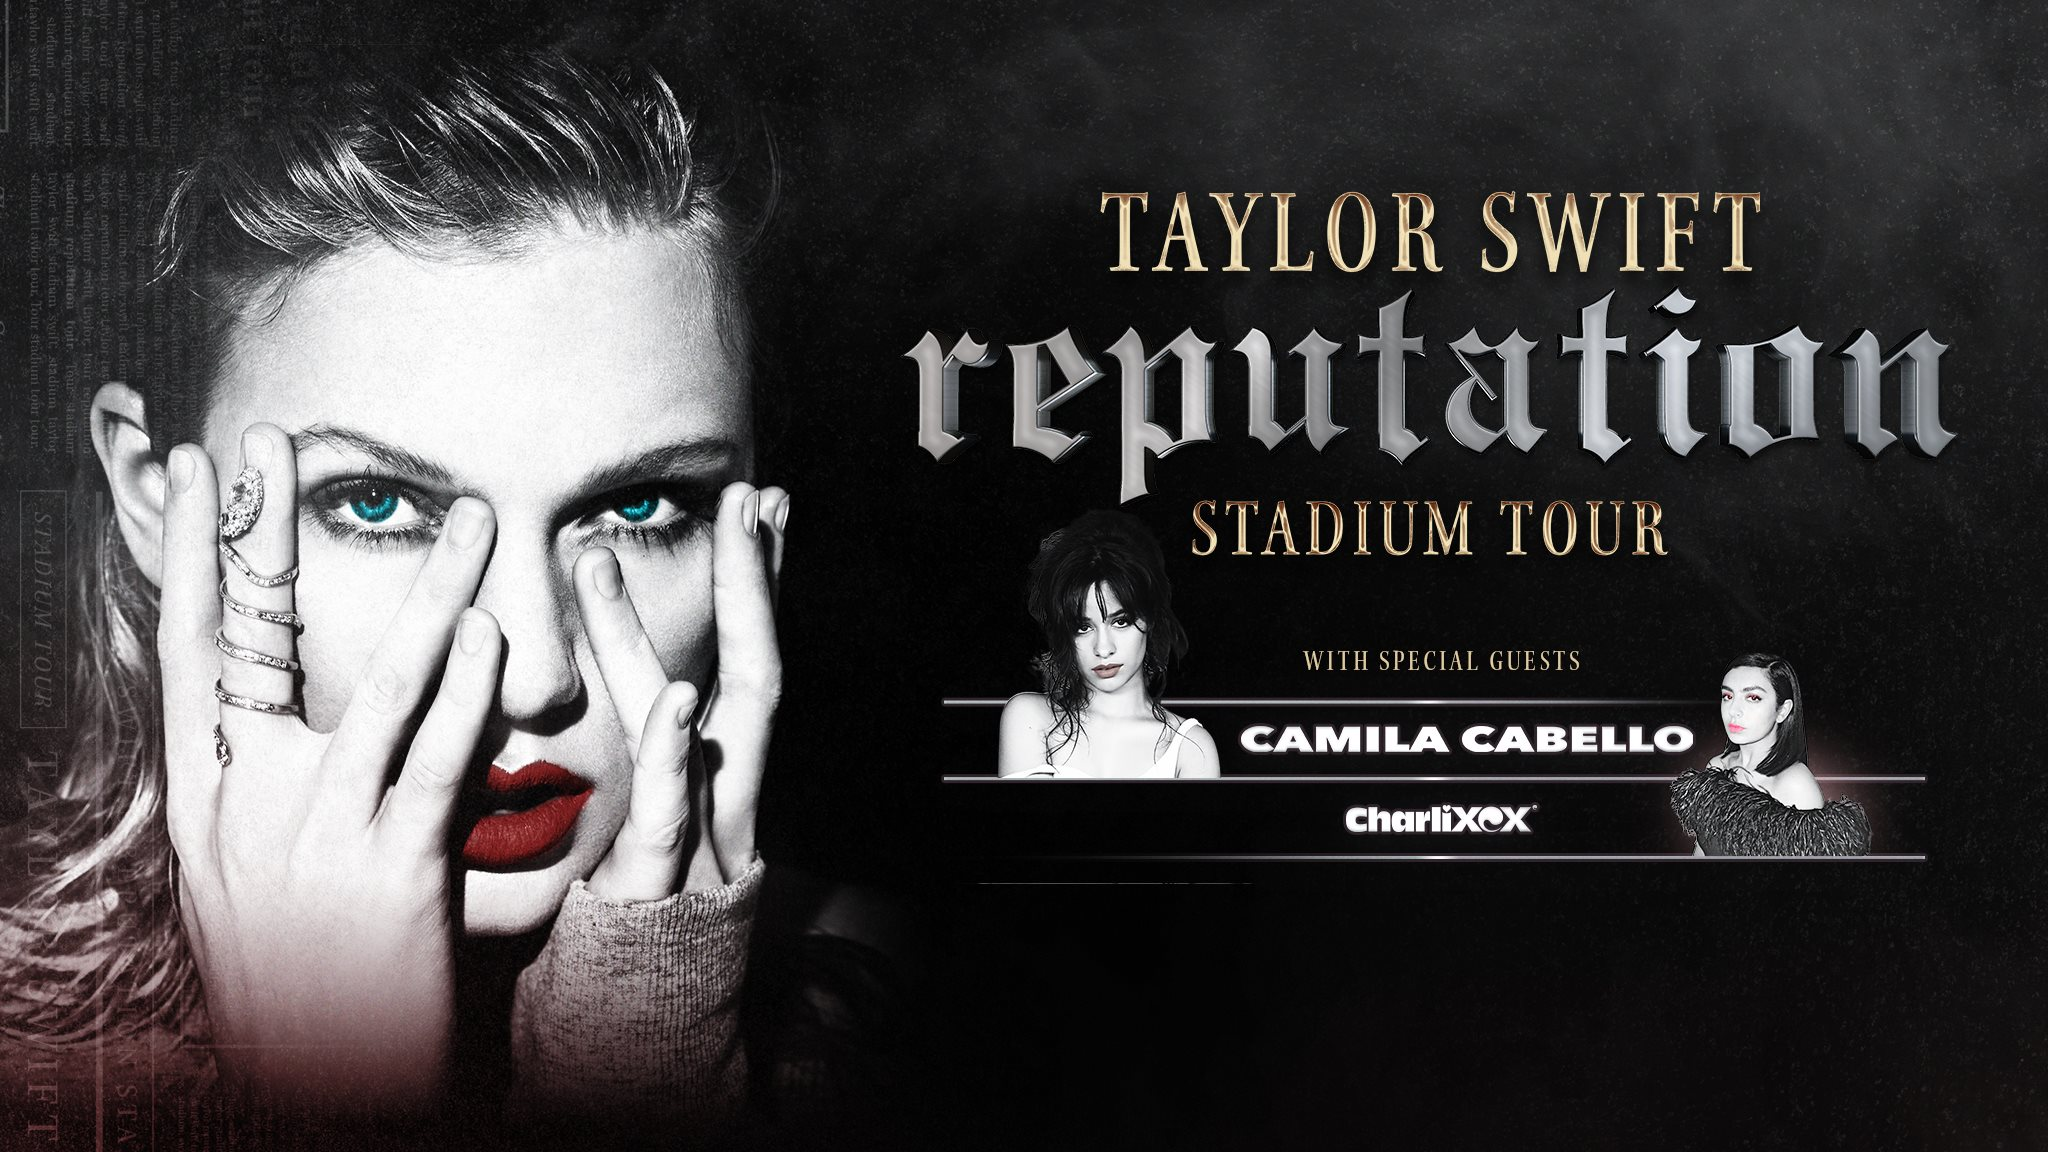 Taylor Swift S Reputation Stadium Tour Camila Cabello Wiki Fandom